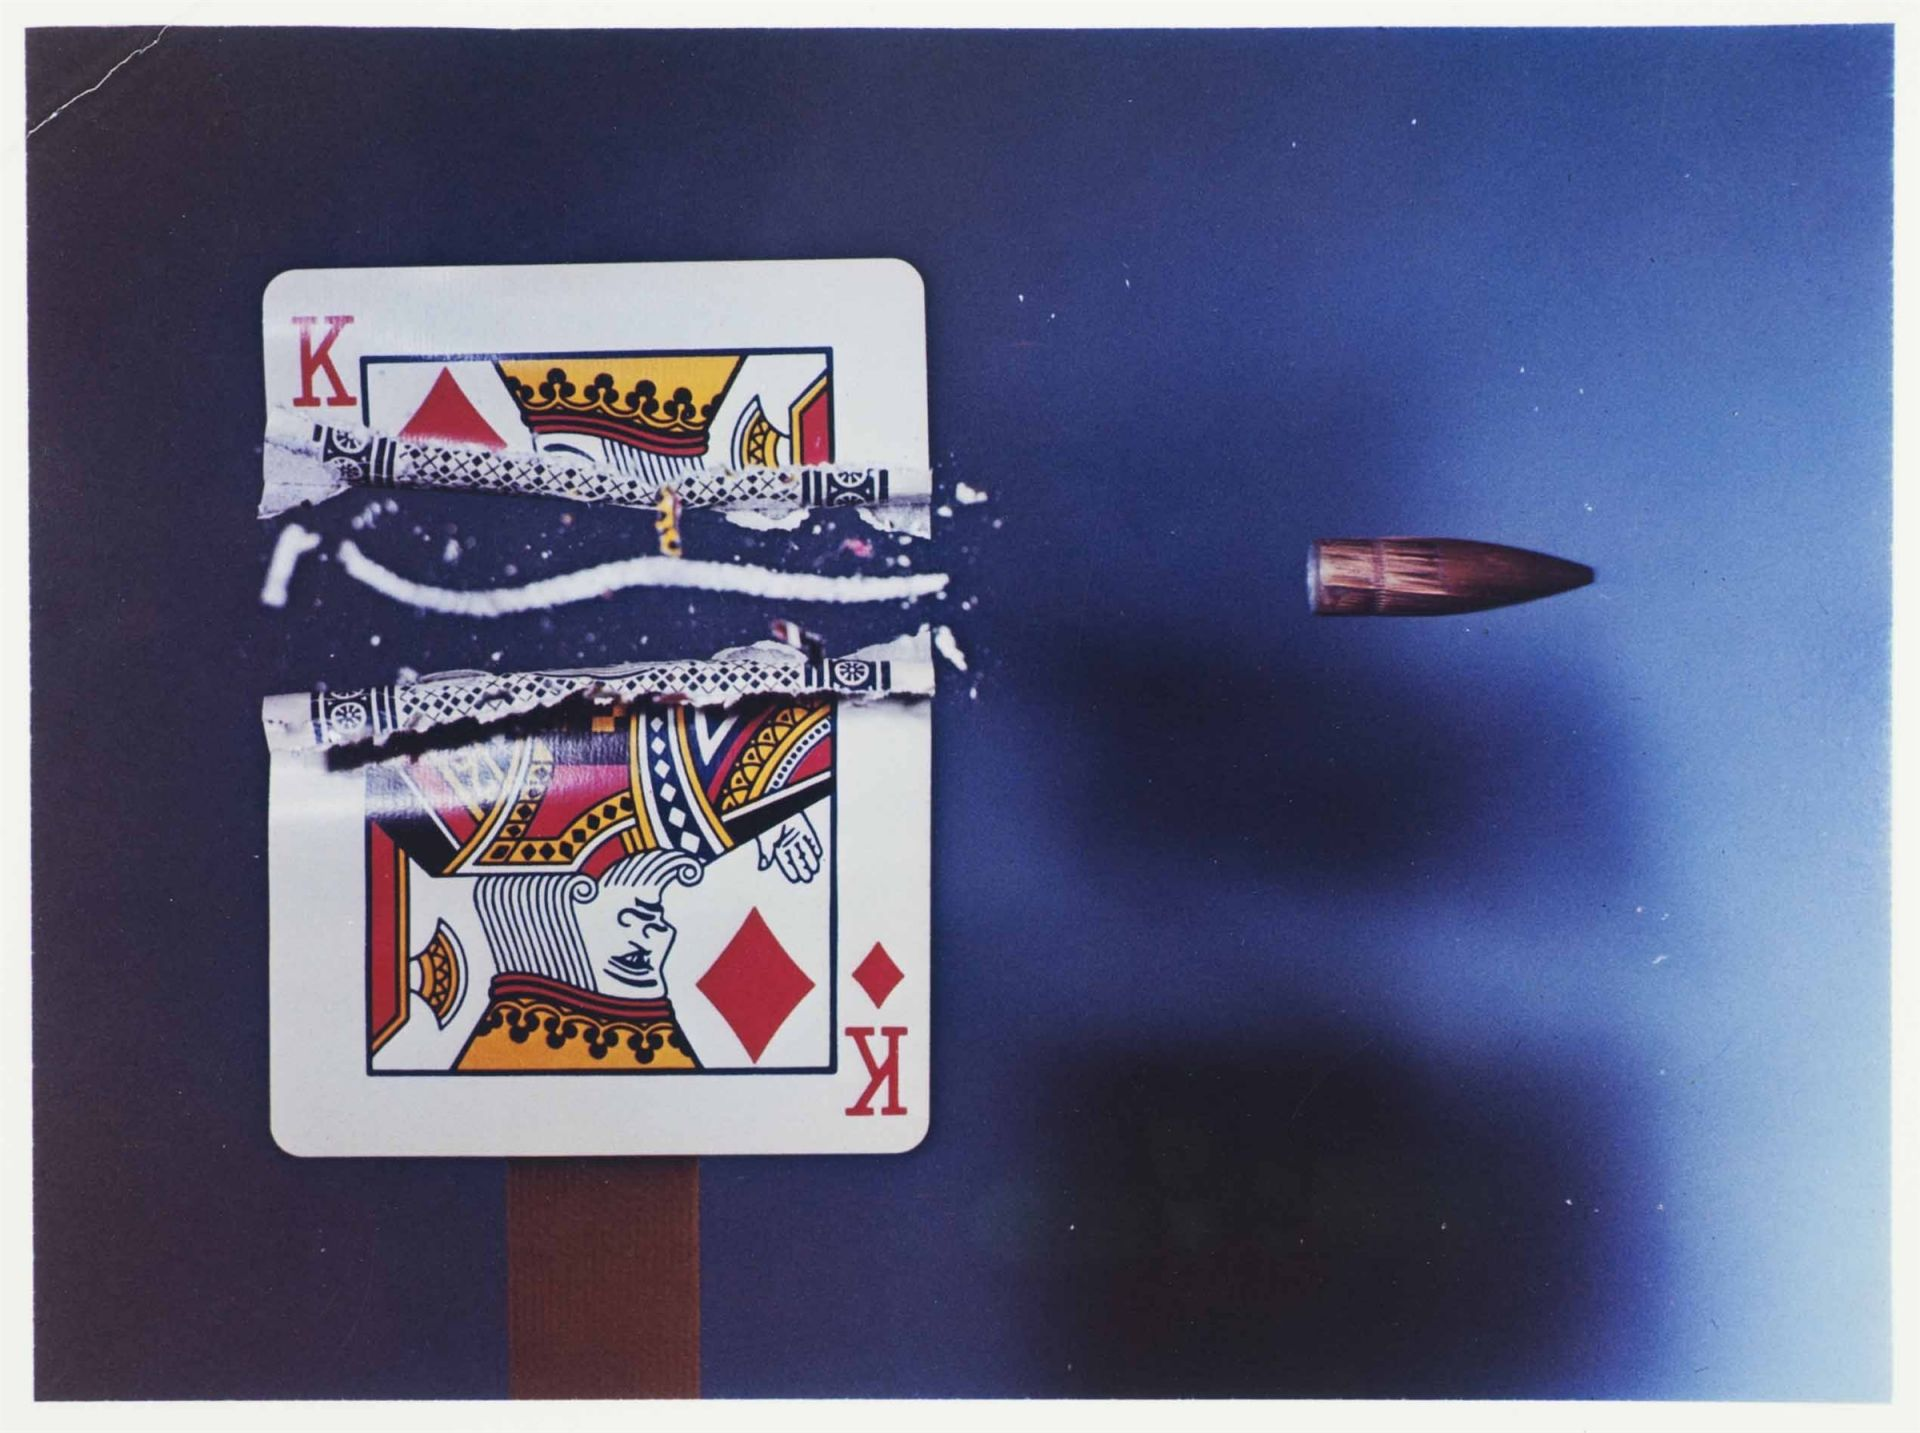 <i>Cutting the Card Quickly,</i> 1964<br> dye transfer<br> 16 x 20 inches<br> A .30 caliber bullet, traveling 2,800 feet per second, requires an exposure of less than 1/1,000,000 of a second to ensure the bullet is captured in the photograph before it exits the camera frame. Edgerton outdid the gun-slinging heroes of western movies by turning the card sideways when he shot through it. The rifling of the barrel caused the rotation of the projectile, which in turn carved out the S-shaped slice of card between the resultant upper and lower pieces of the card.